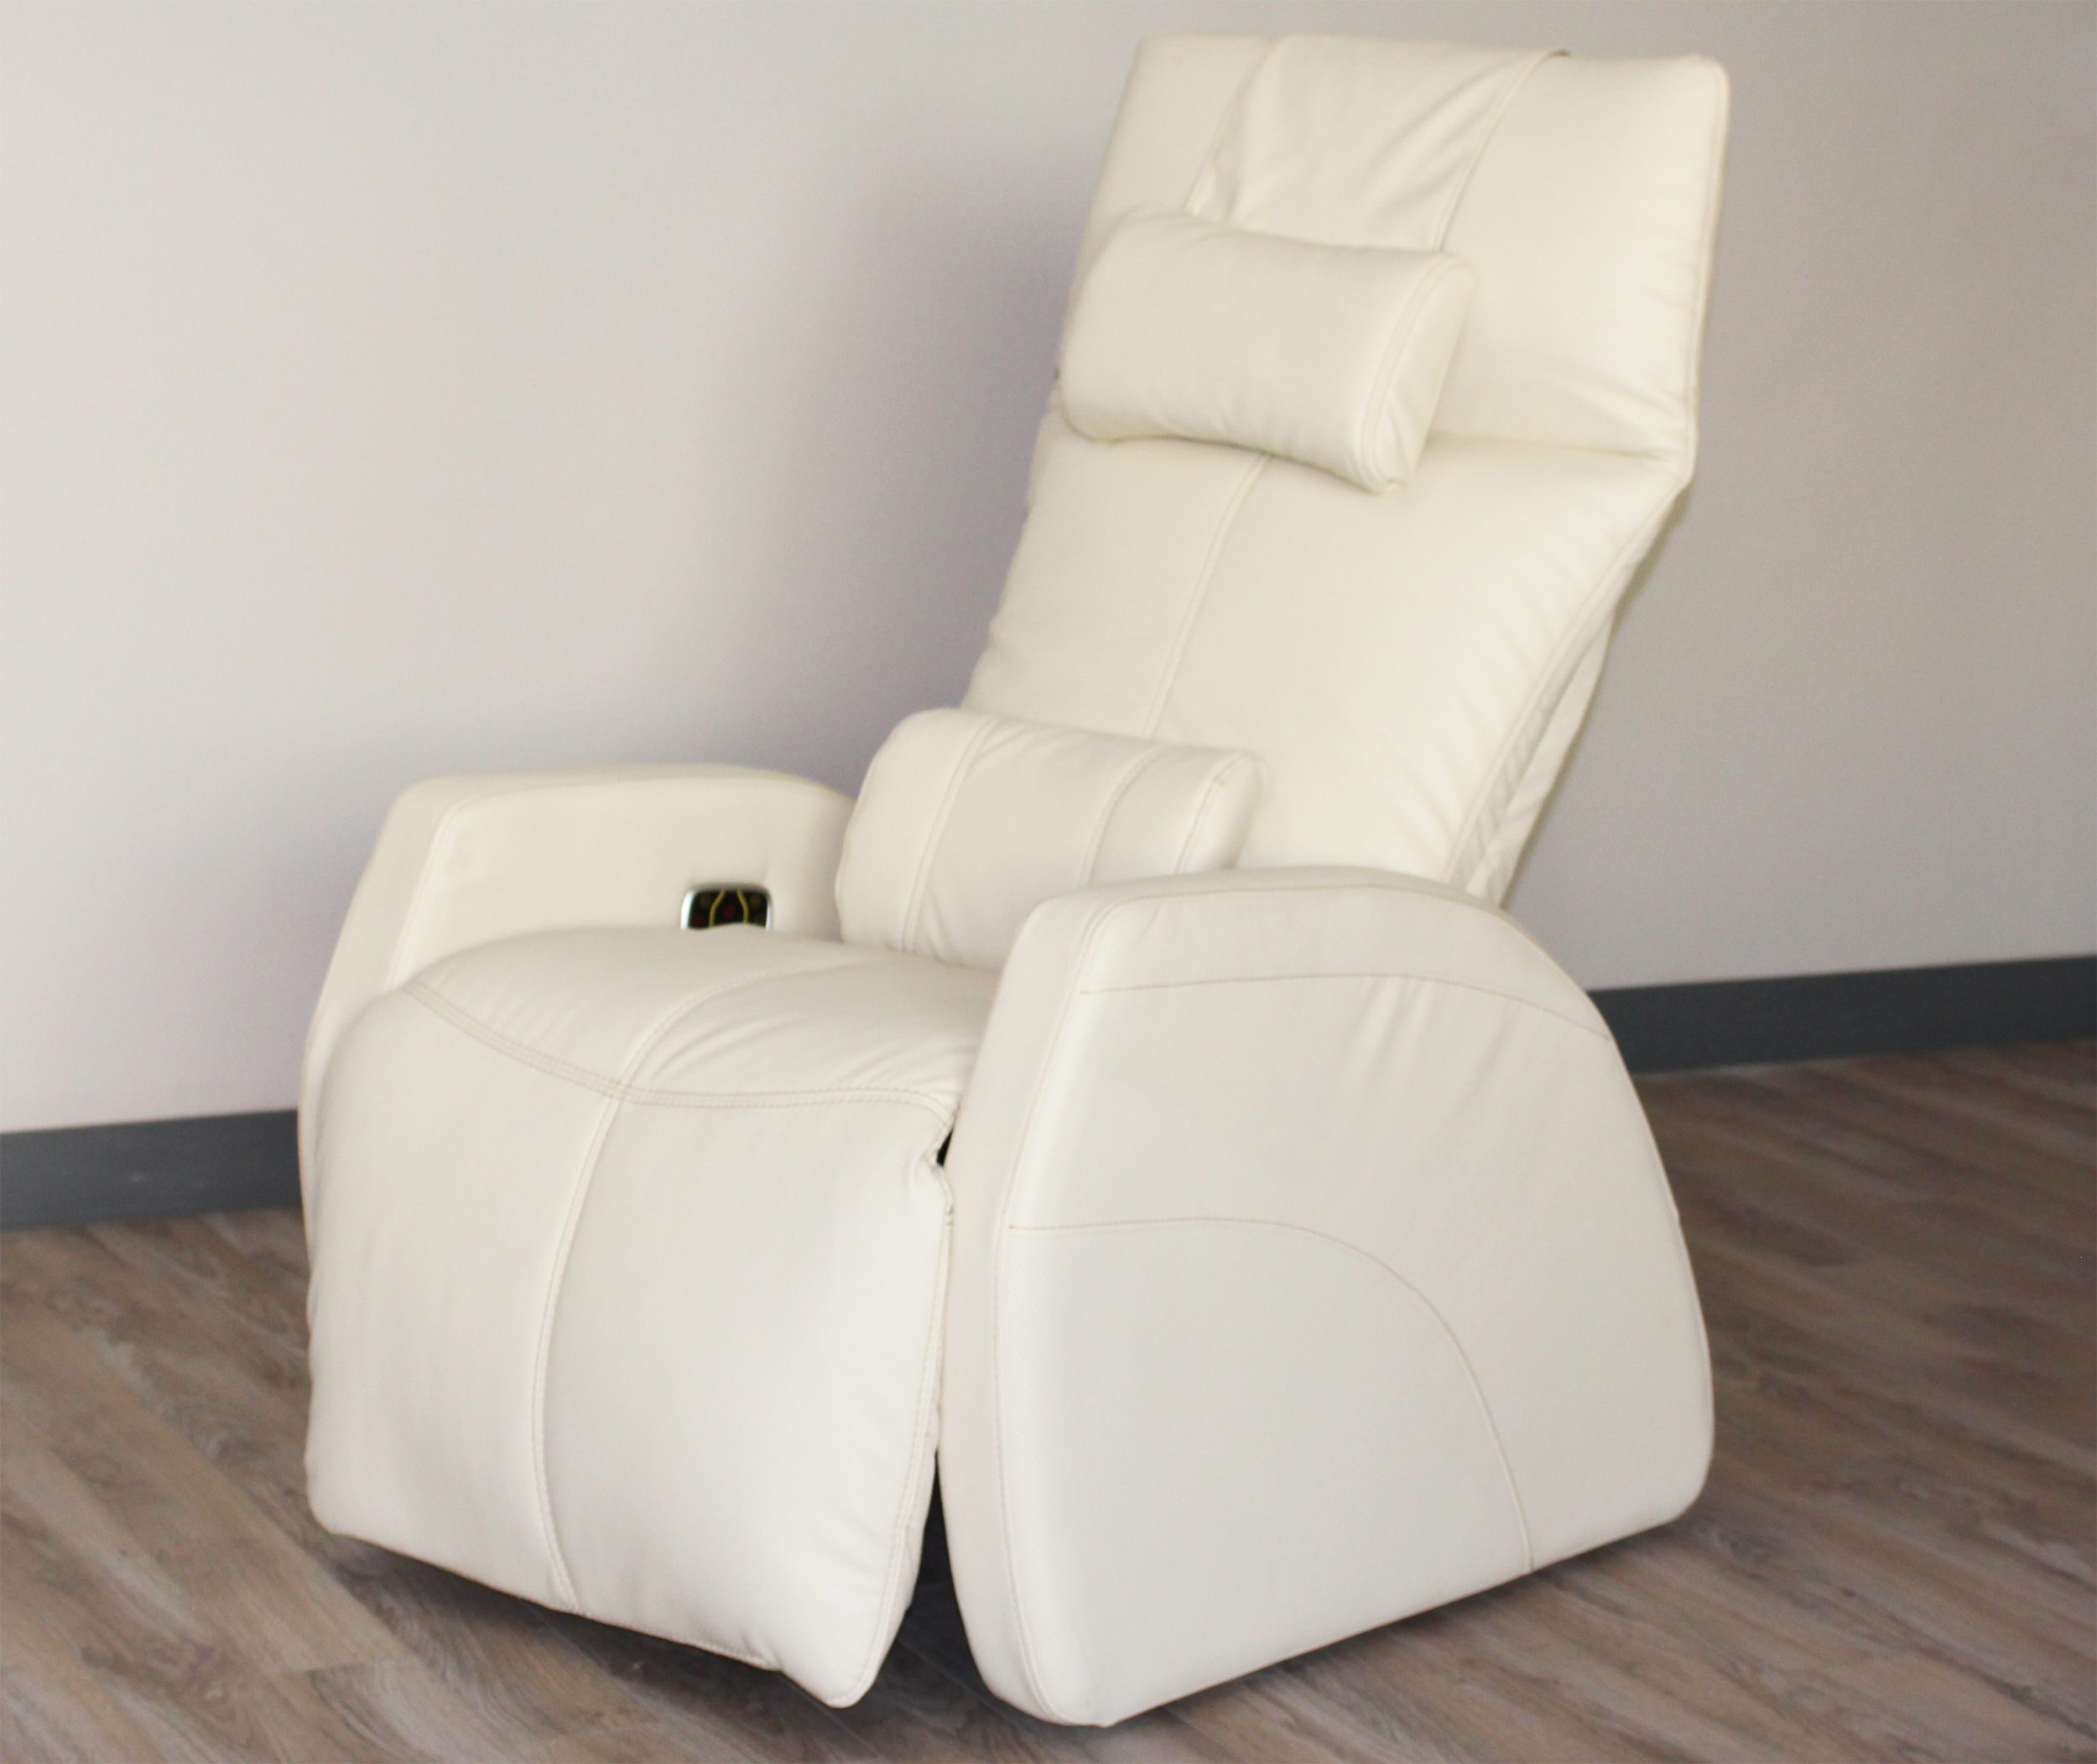 cozzia ag6100 electric zero anti gravity recliner chair